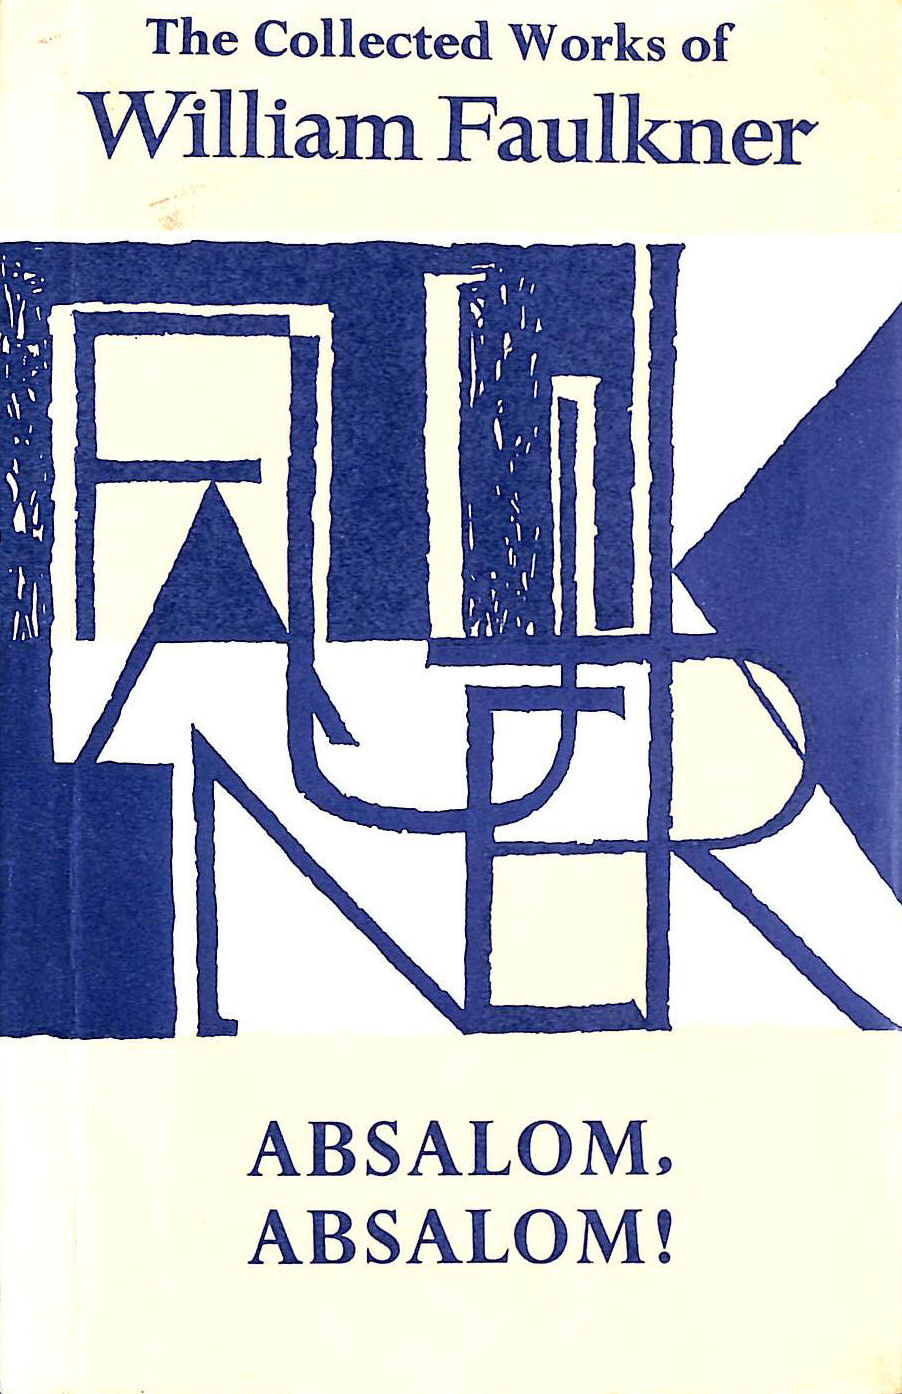 Image for Absalom, Absalom! (The collected works of William Faulkner)